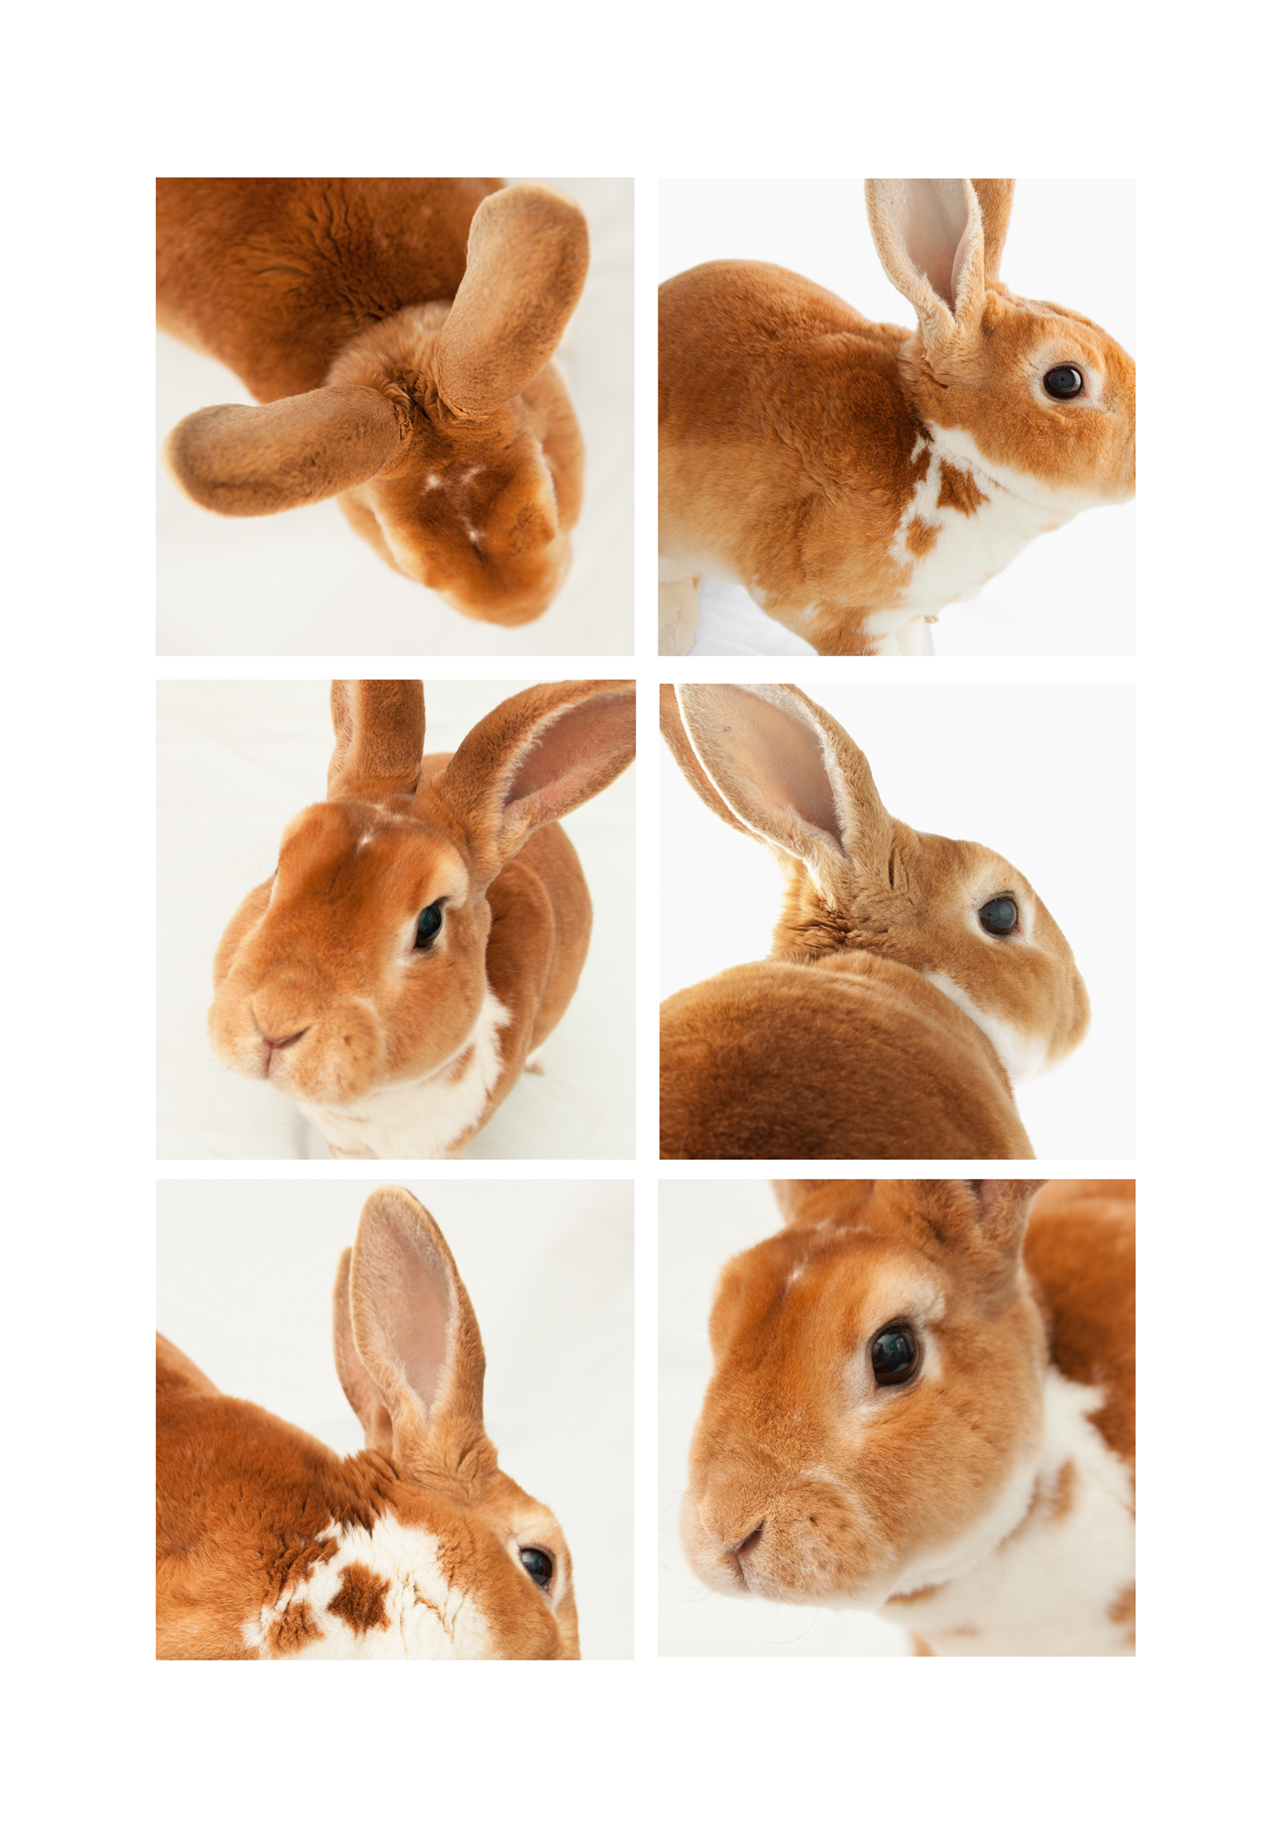 London_Portrait_Photographer_Studio_Photography_Pet_Photography_Rabbit-021_woody.jpg